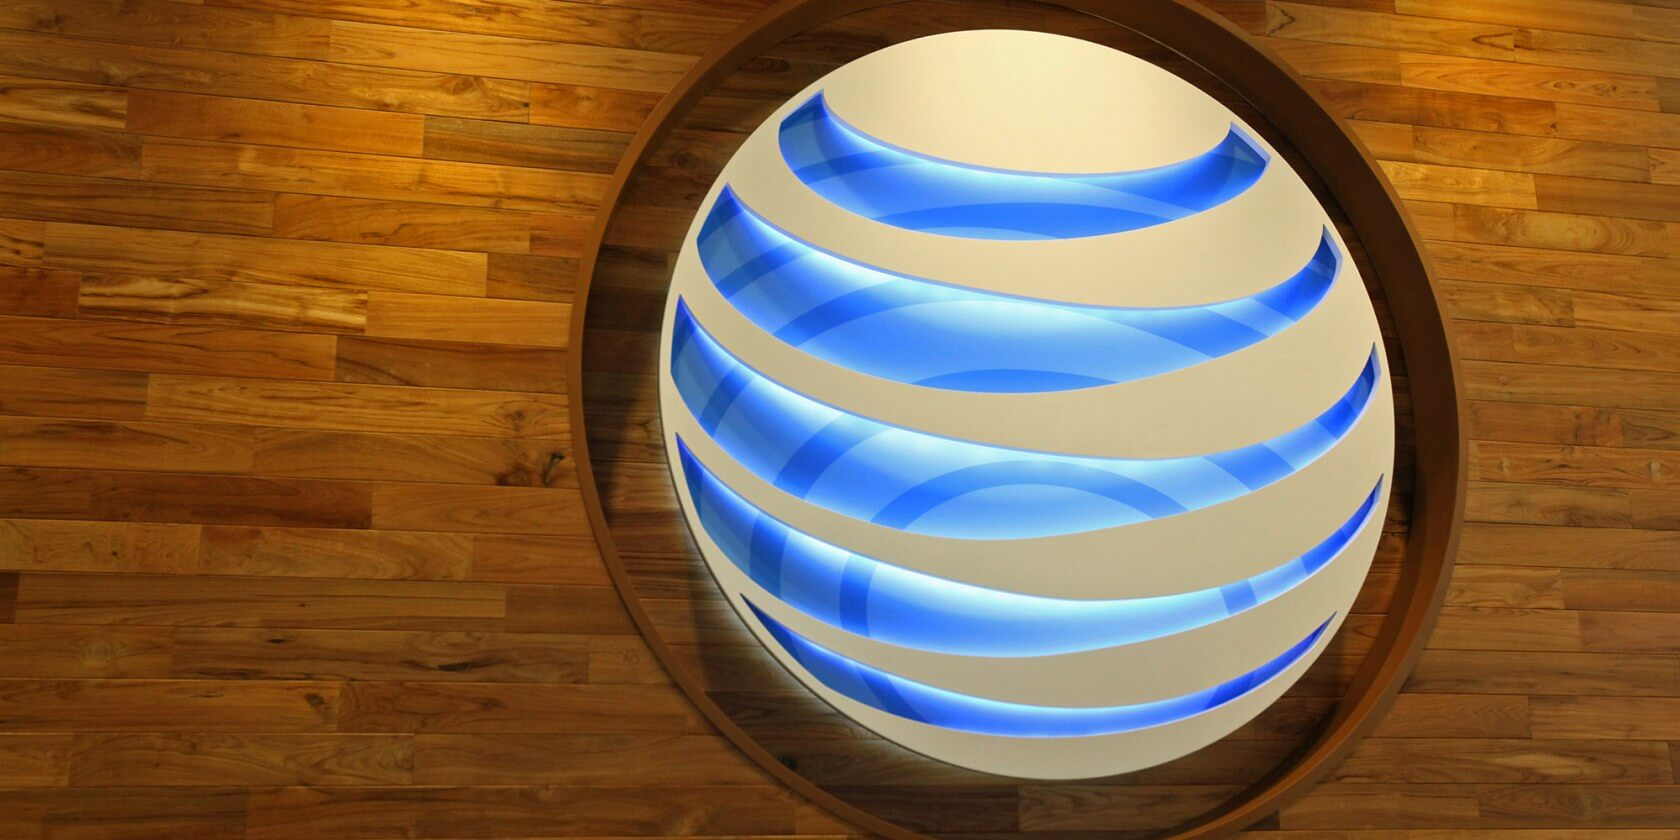 Wireless carriers vow to stop selling customers' location data to third parties